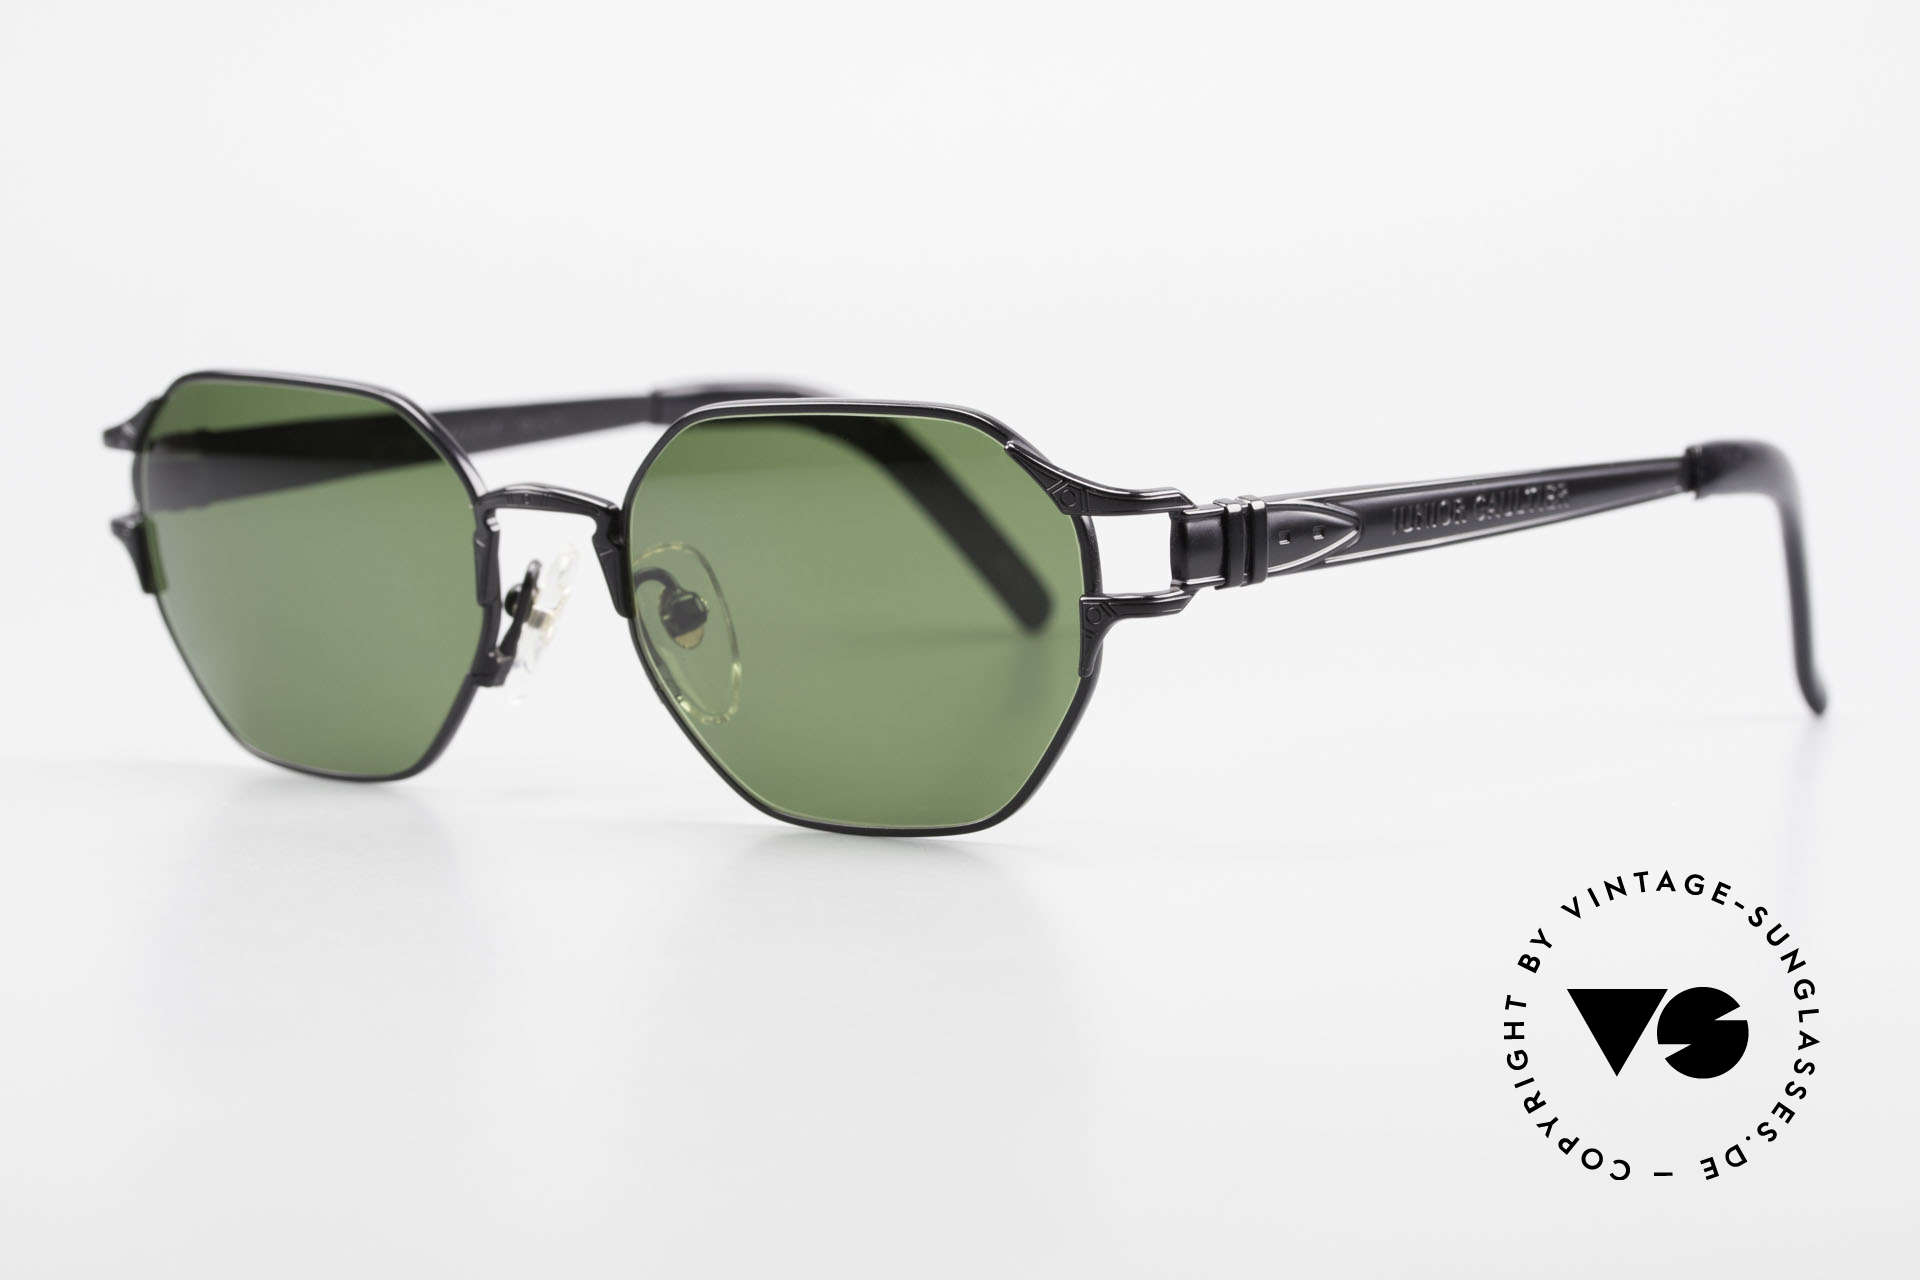 Jean Paul Gaultier 58-4173 Square JPG 90's Designer Shades, TOP craftsmanship (made in Japan, around '95), Made for Men and Women